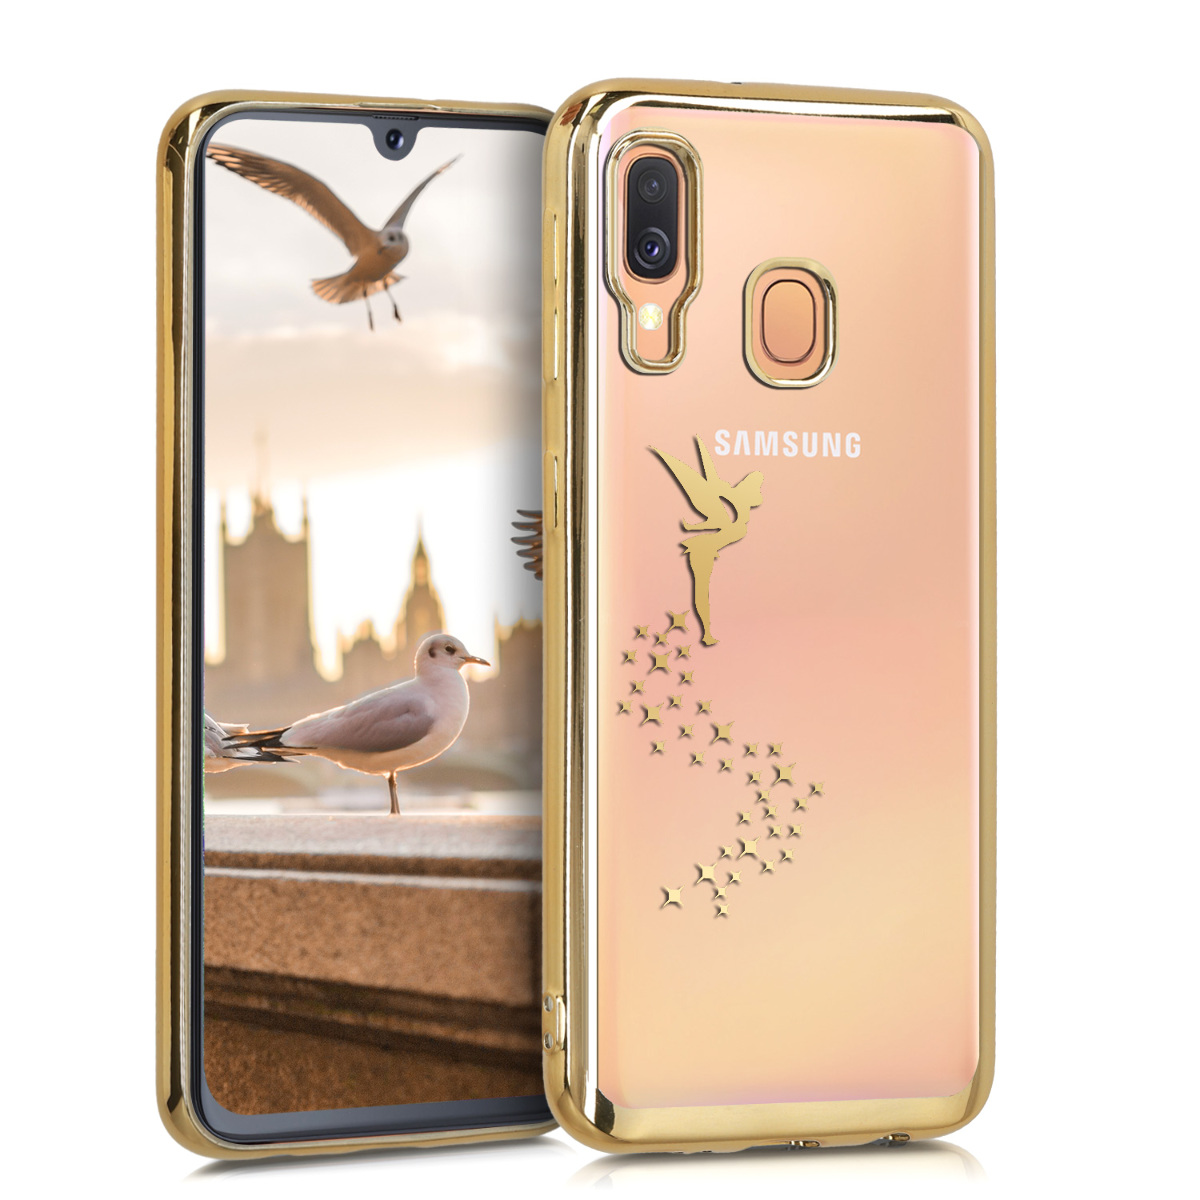 KW Θήκη Σιλικόνης Samsung Galaxy A40 - Gold / Transparent (49539.01)